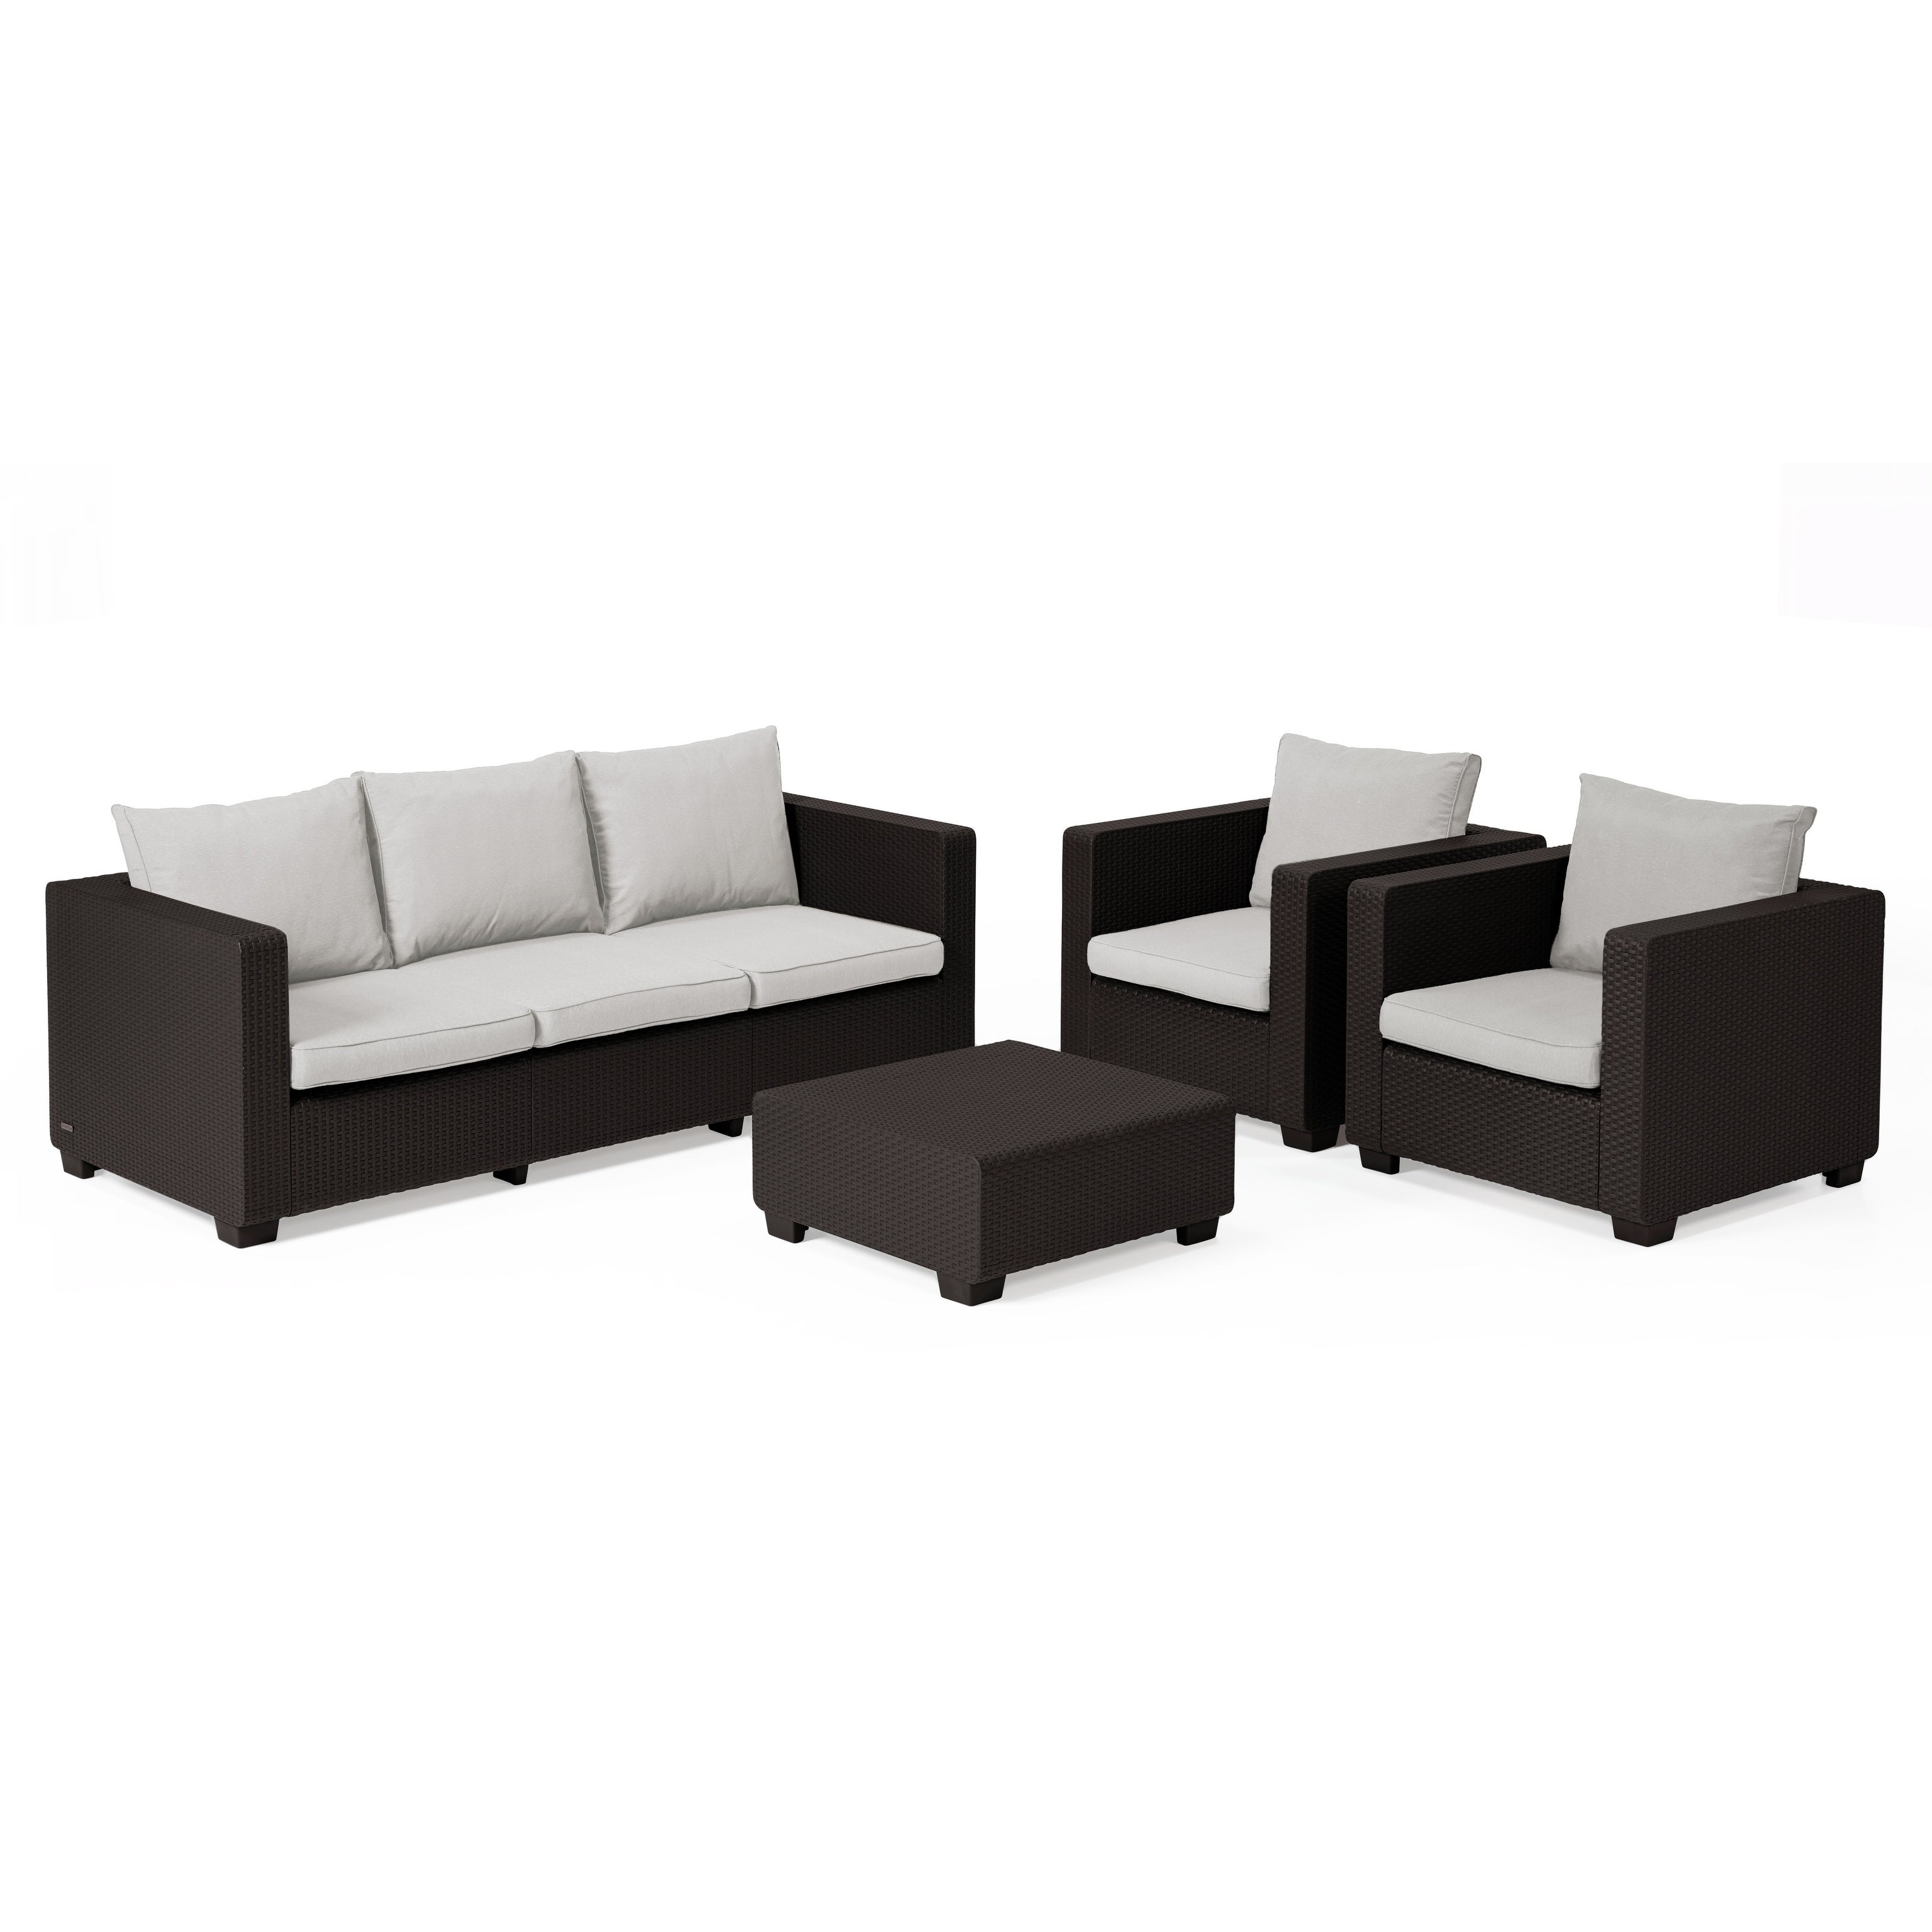 Keter Salta 3 Seat All Weather Outdoor Patio Sofa With Sunbrella Cushions Free Shipping Today 20359546